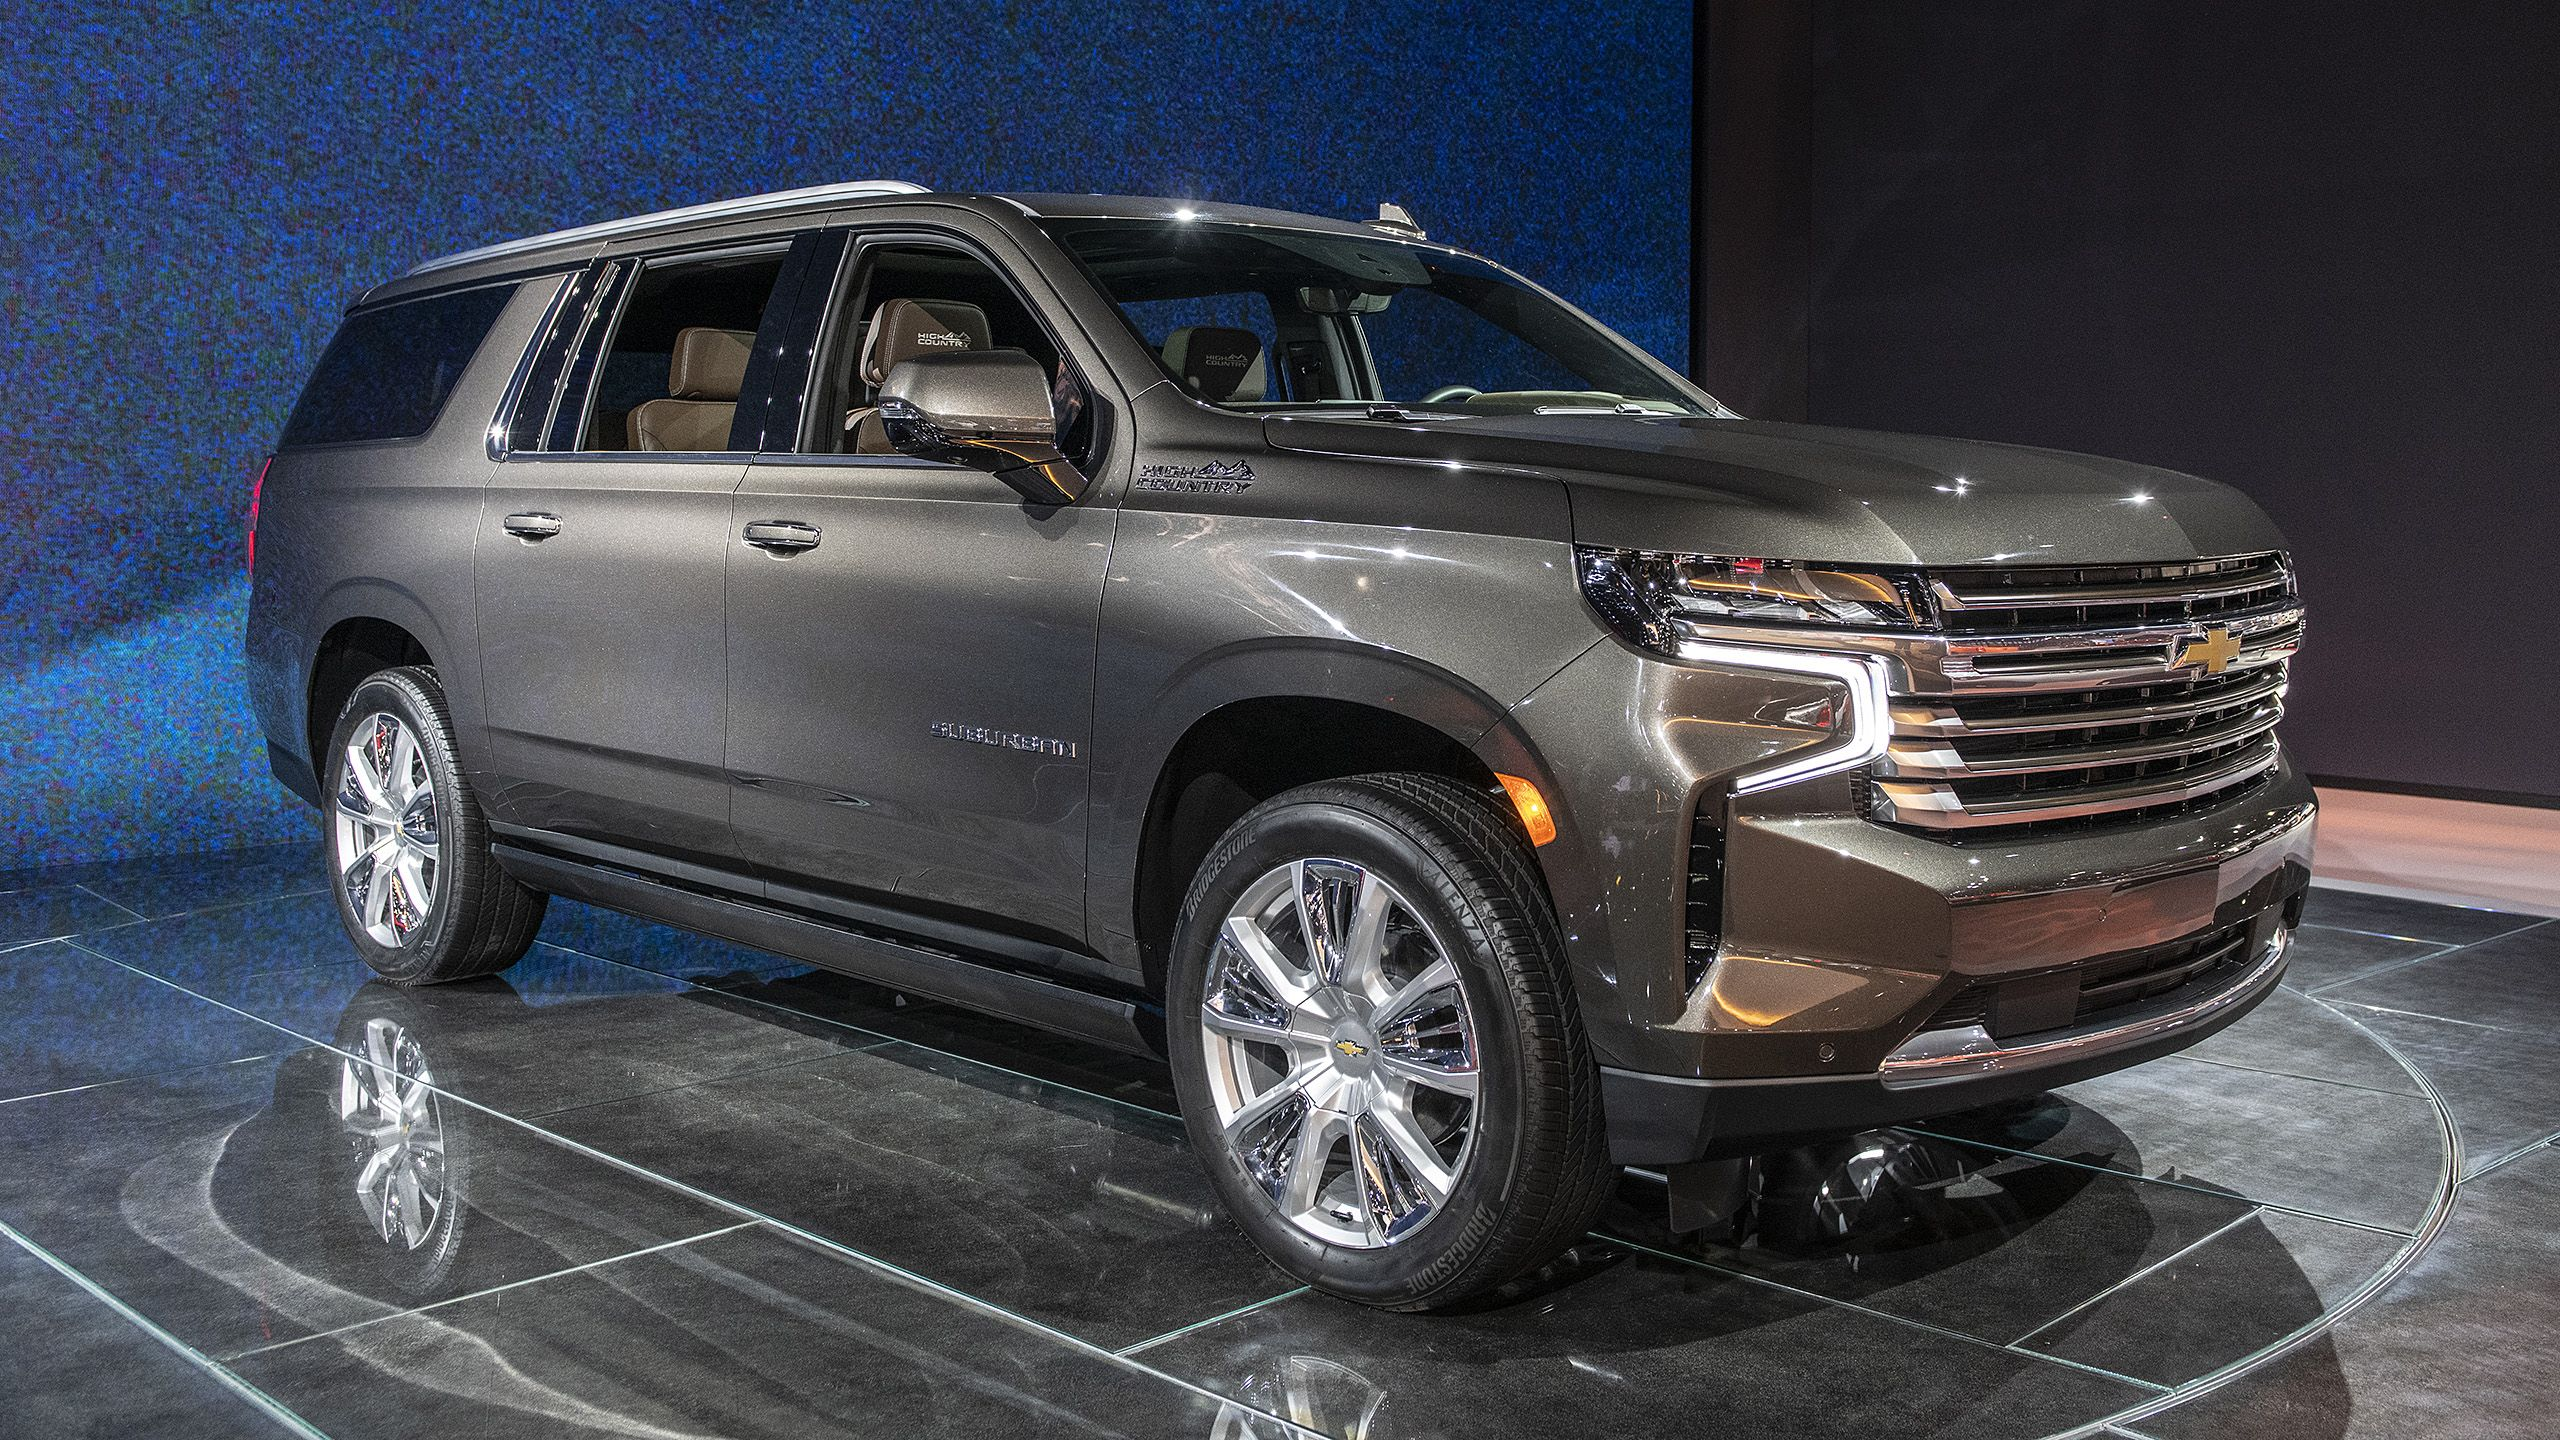 2021 Chevrolet Suburban starts at 52,995, no change from